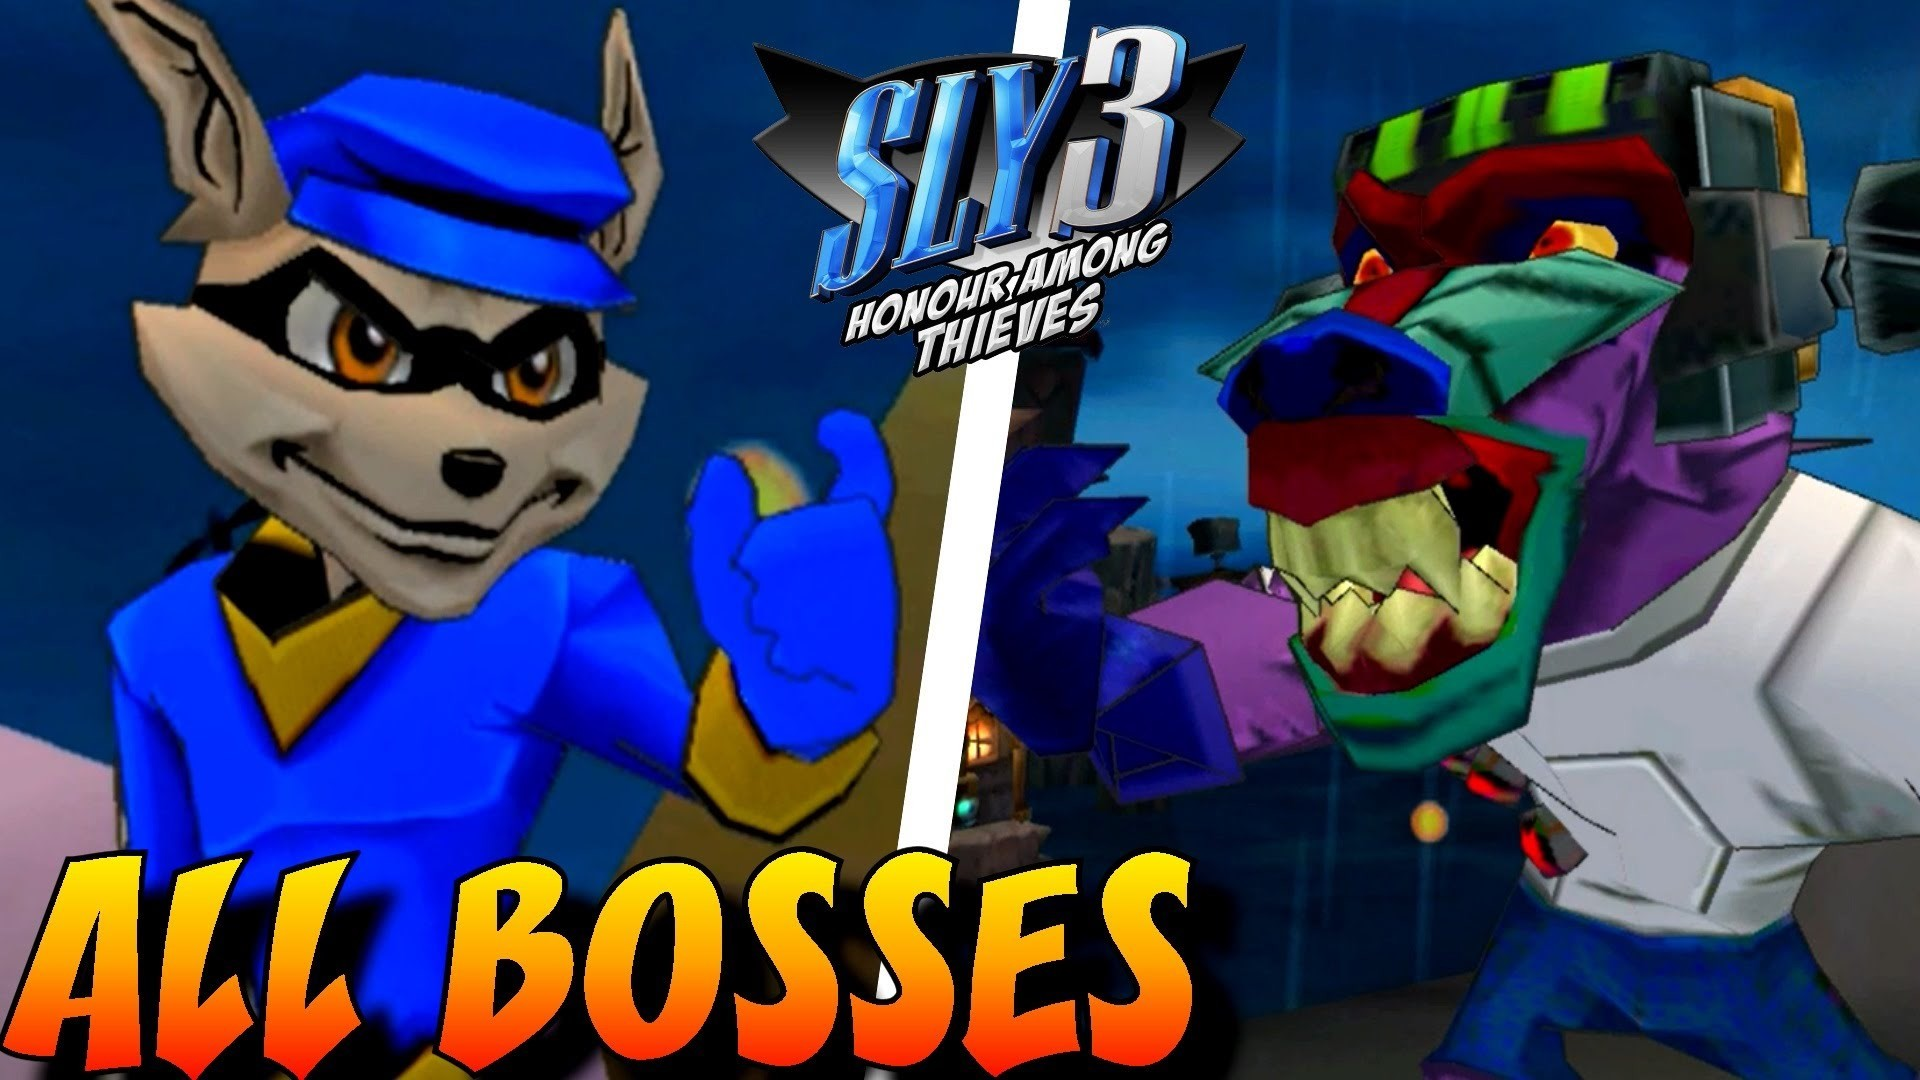 sly cooper ps3 wallpaper …